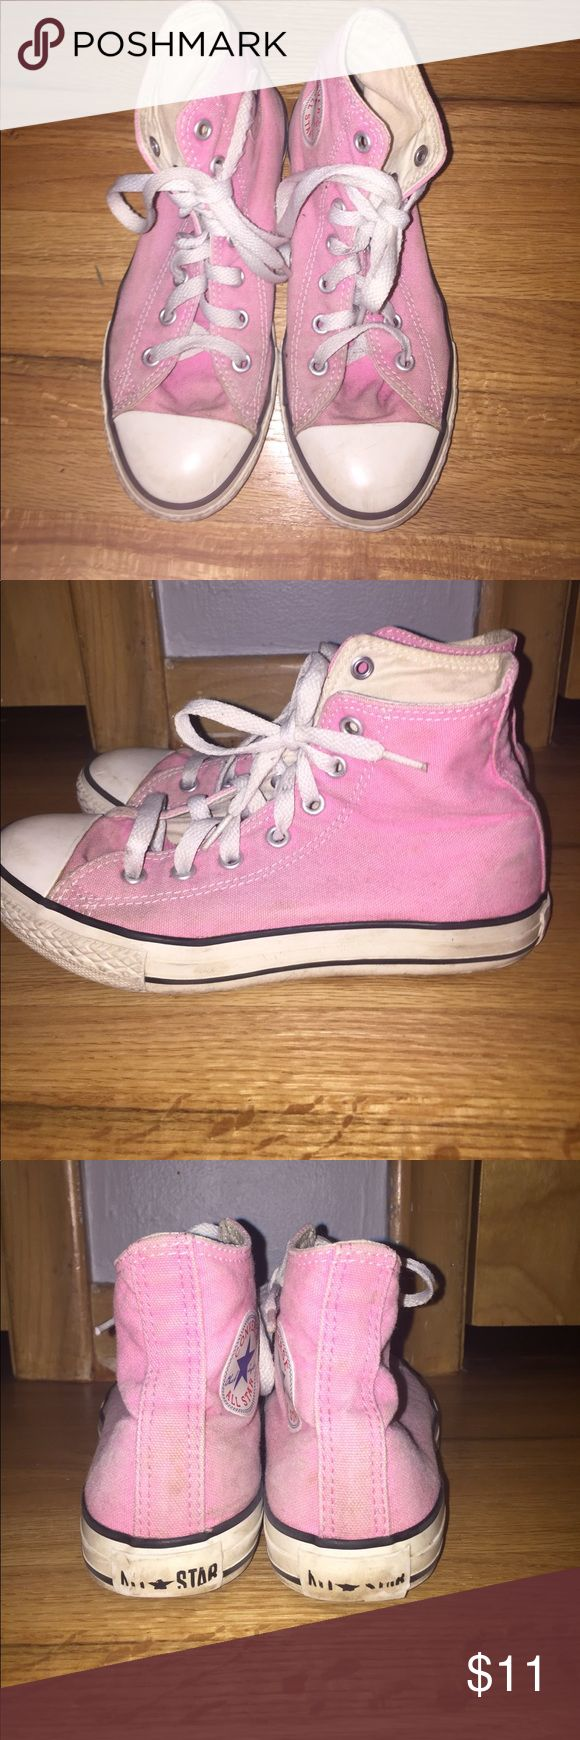 Pink high top converse Bright pink high top converse! Converse Shoes Sneakers